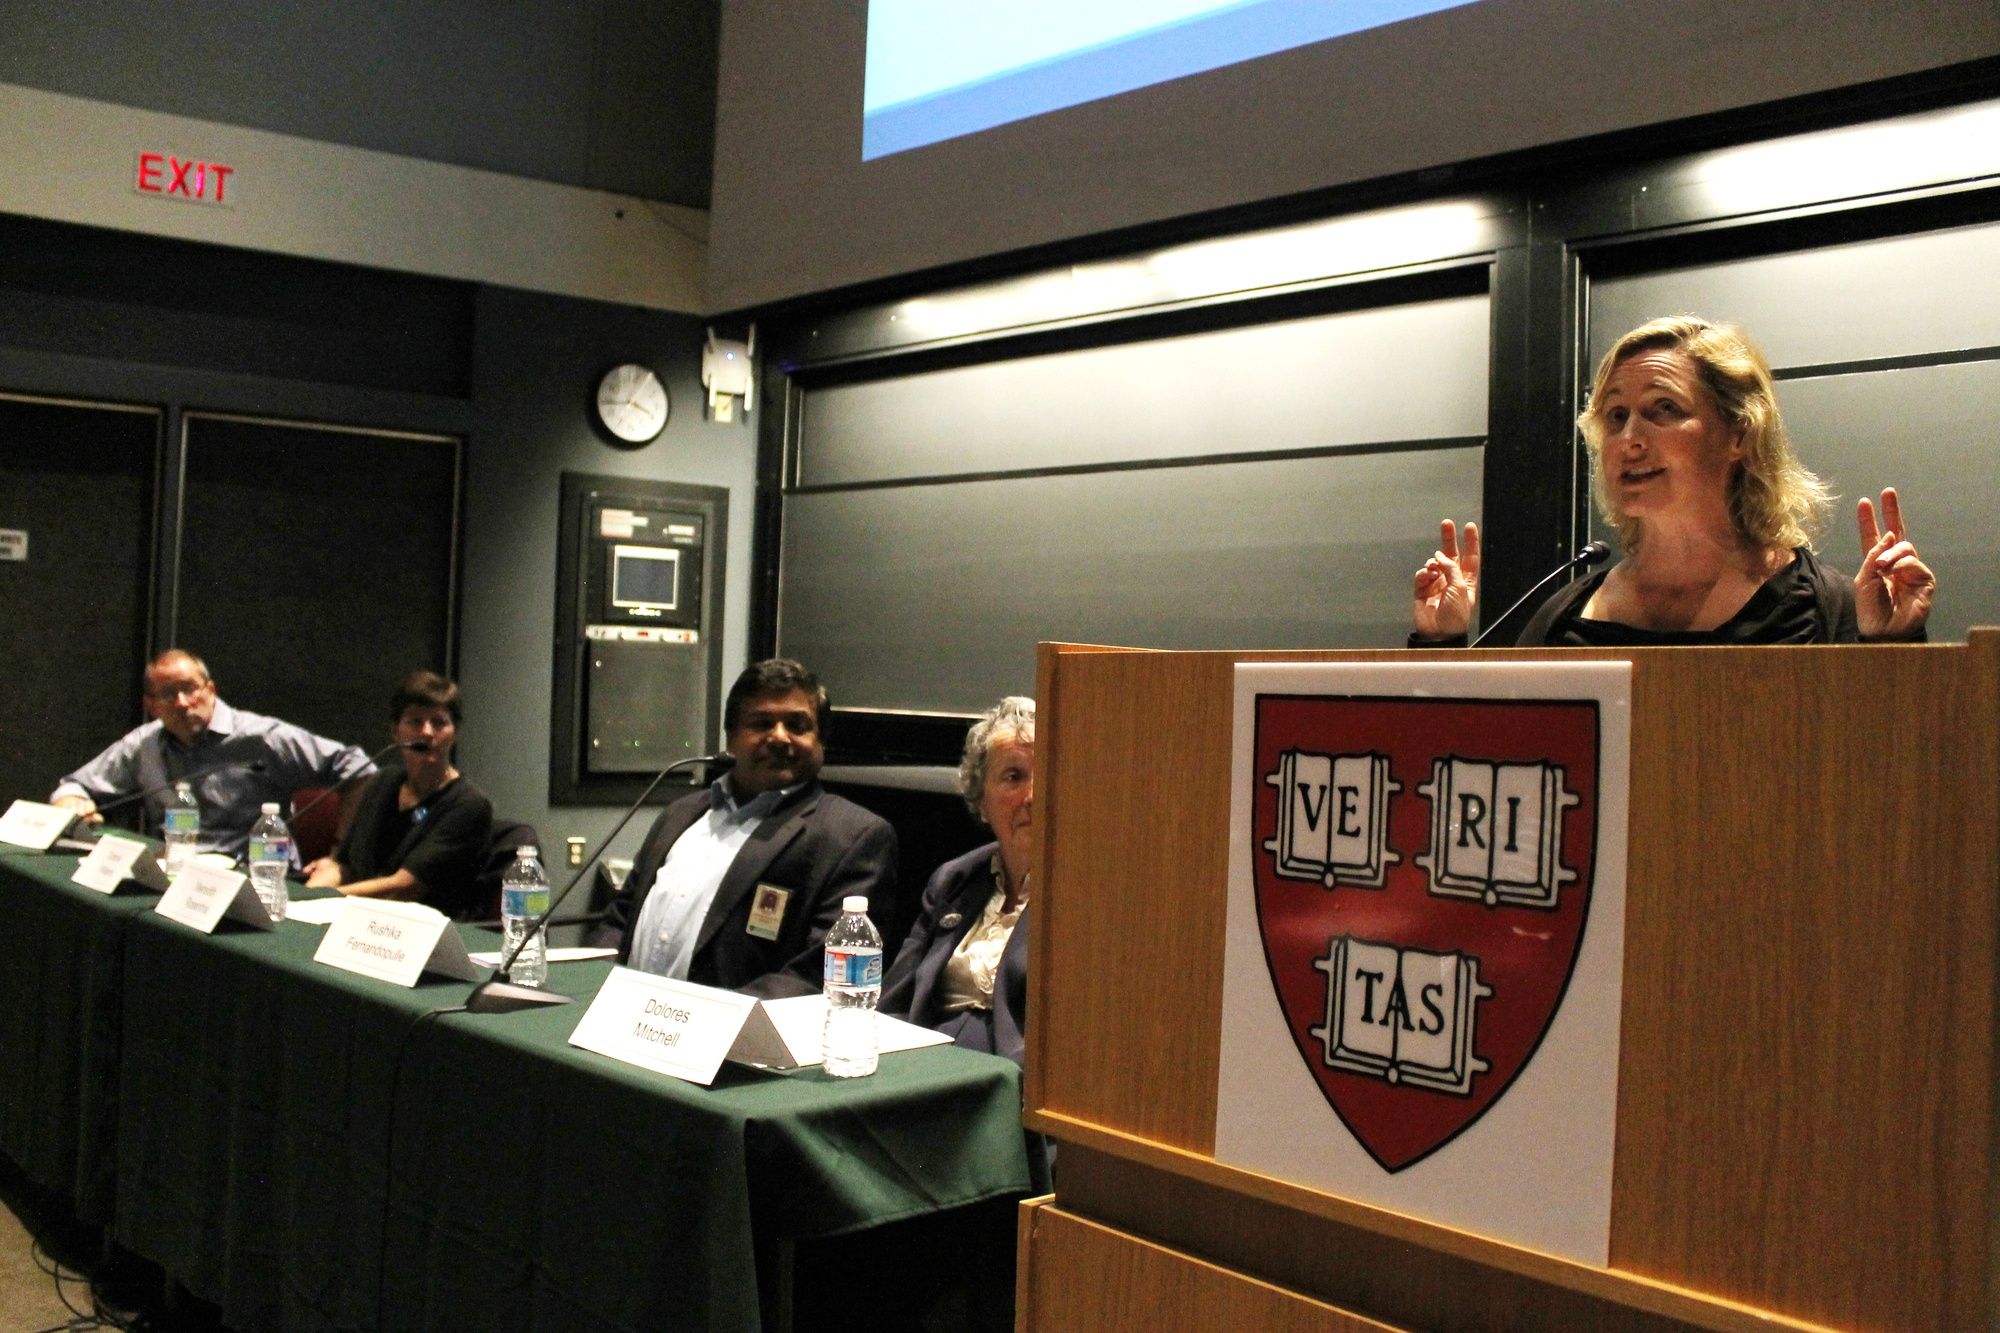 Meredith B. Rosenthal, professor at the School of Public Health, speaks about reducing health care costs at the HUCTW sponsored panel in the Science Center on Monday afternoon.